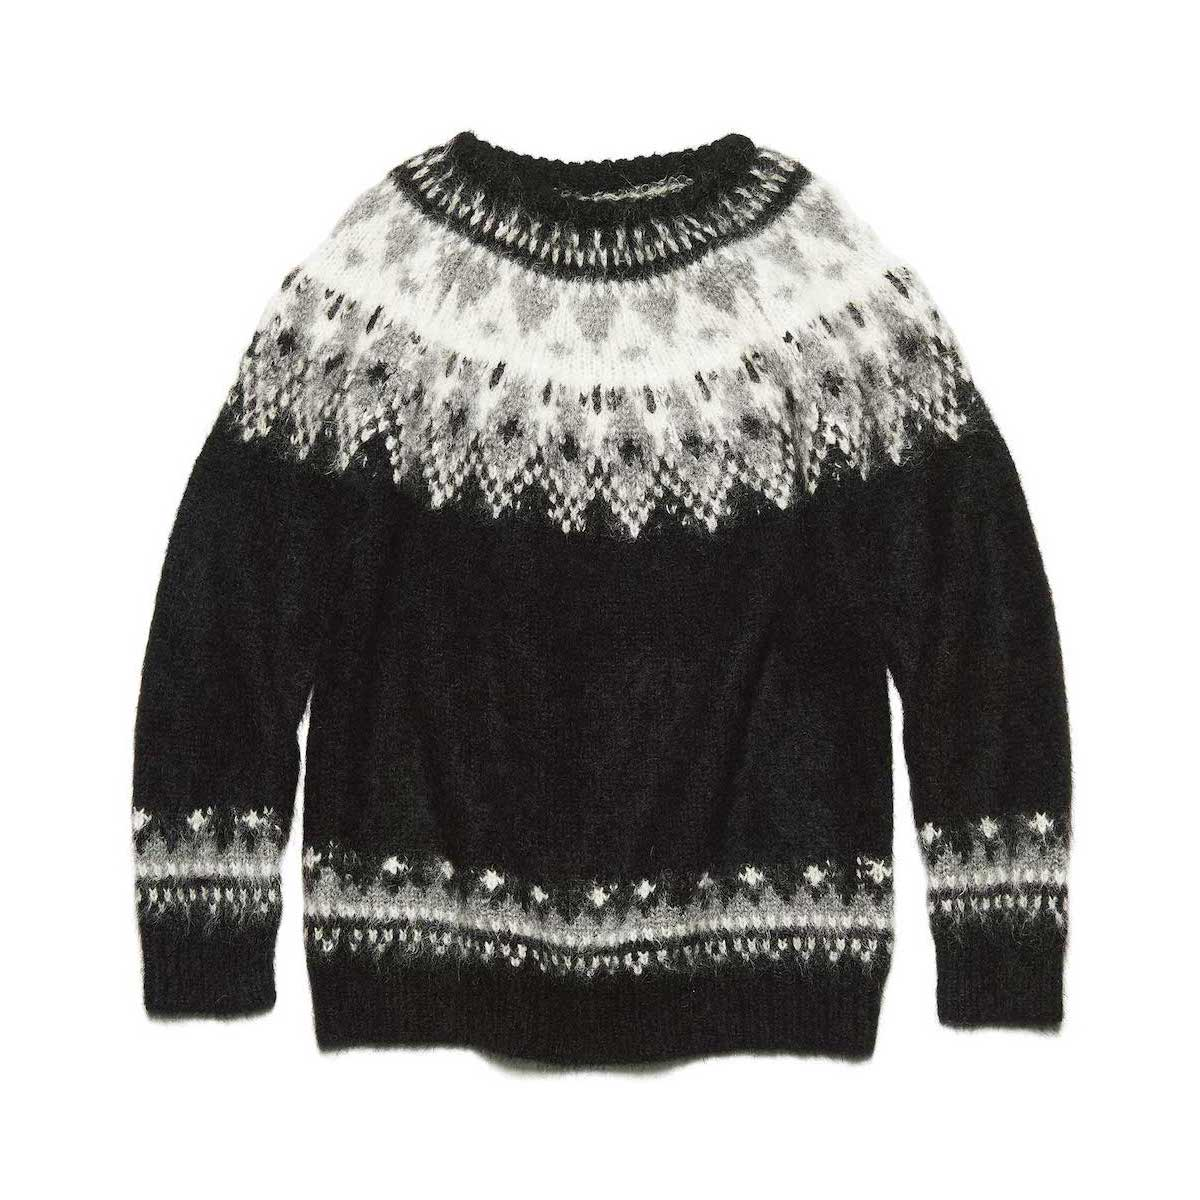 uniform experiment / NORDIC MOHAIR CREWNECK KNIT (Black)